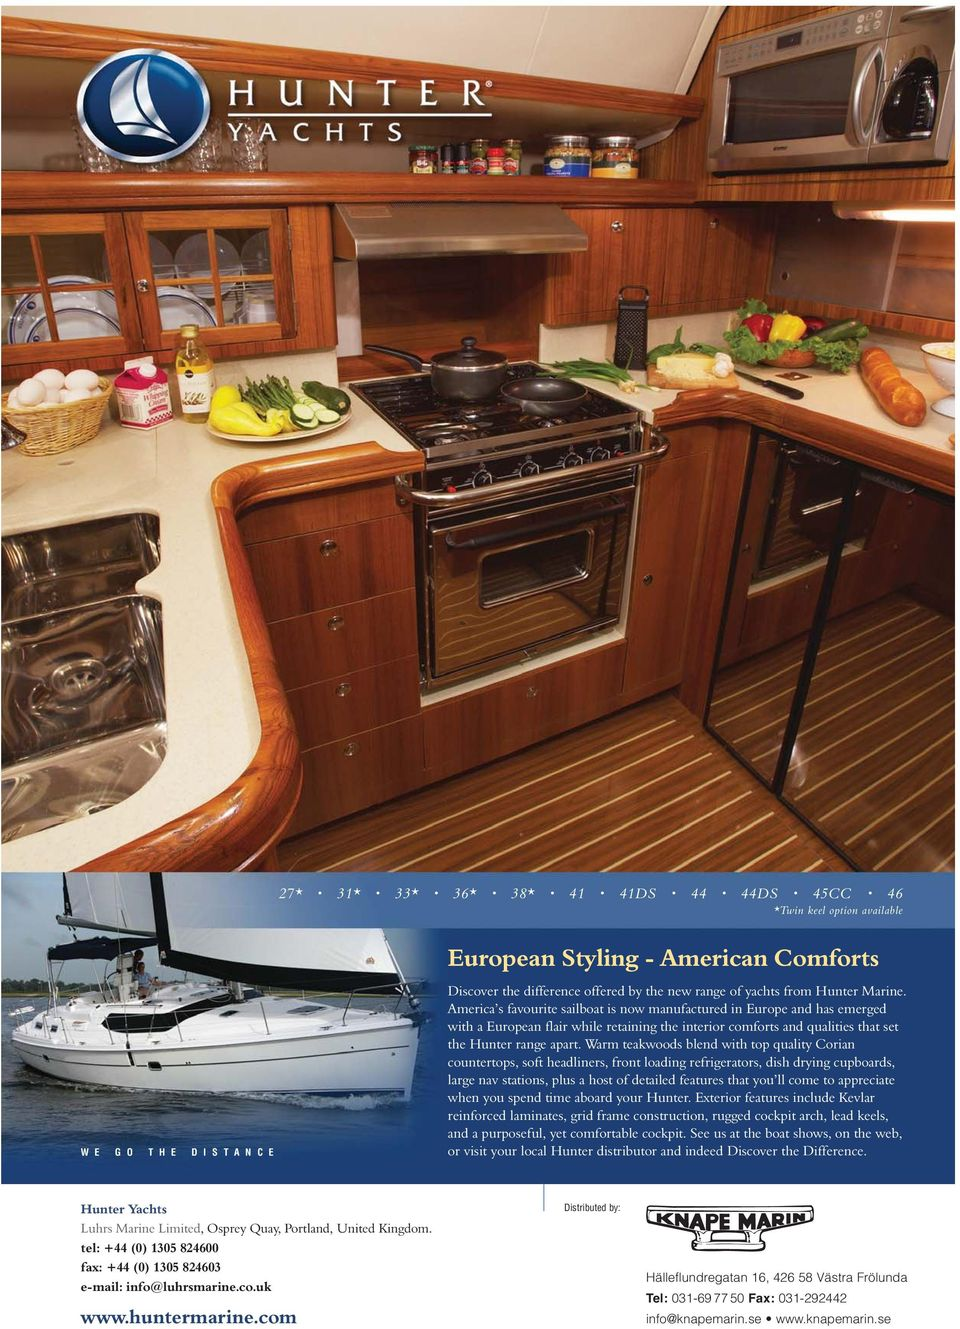 America s favourite sailboat is now manufactured in Europe and has emerged with a European flair while retaining the interior comforts and qualities that set the Hunter range apart.